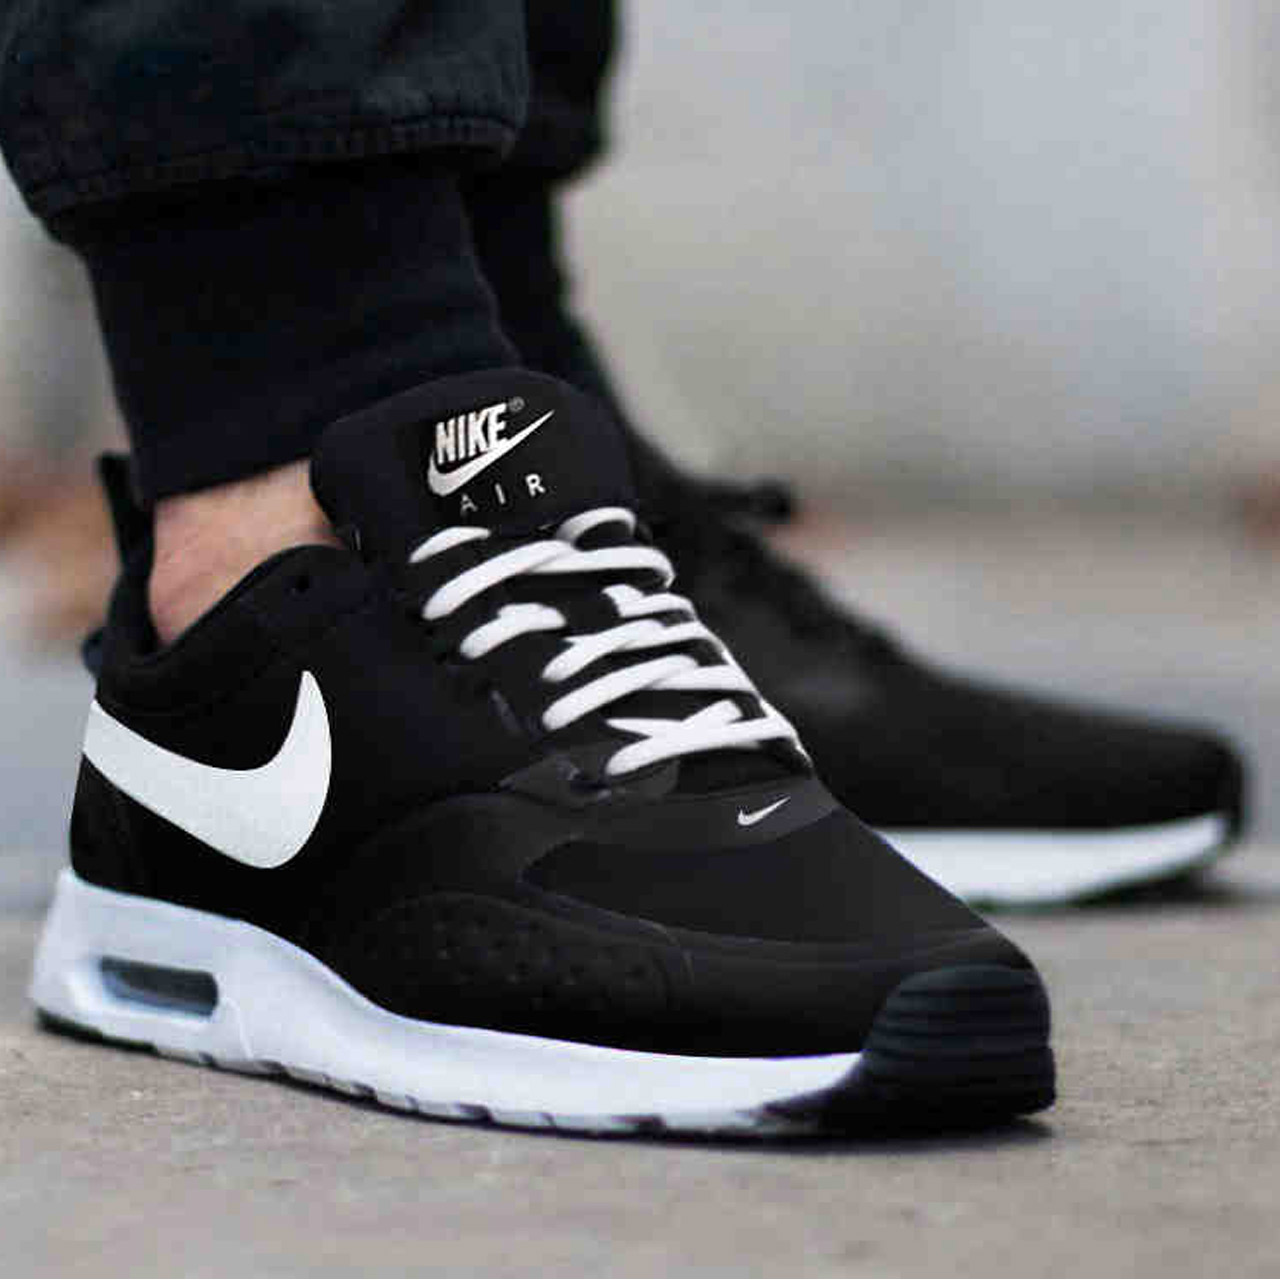 Nike men's shoes 2017 winter Air Max air cushion shoes shock absorber shoes  sports shoes casual running shoes 918230-SGshop